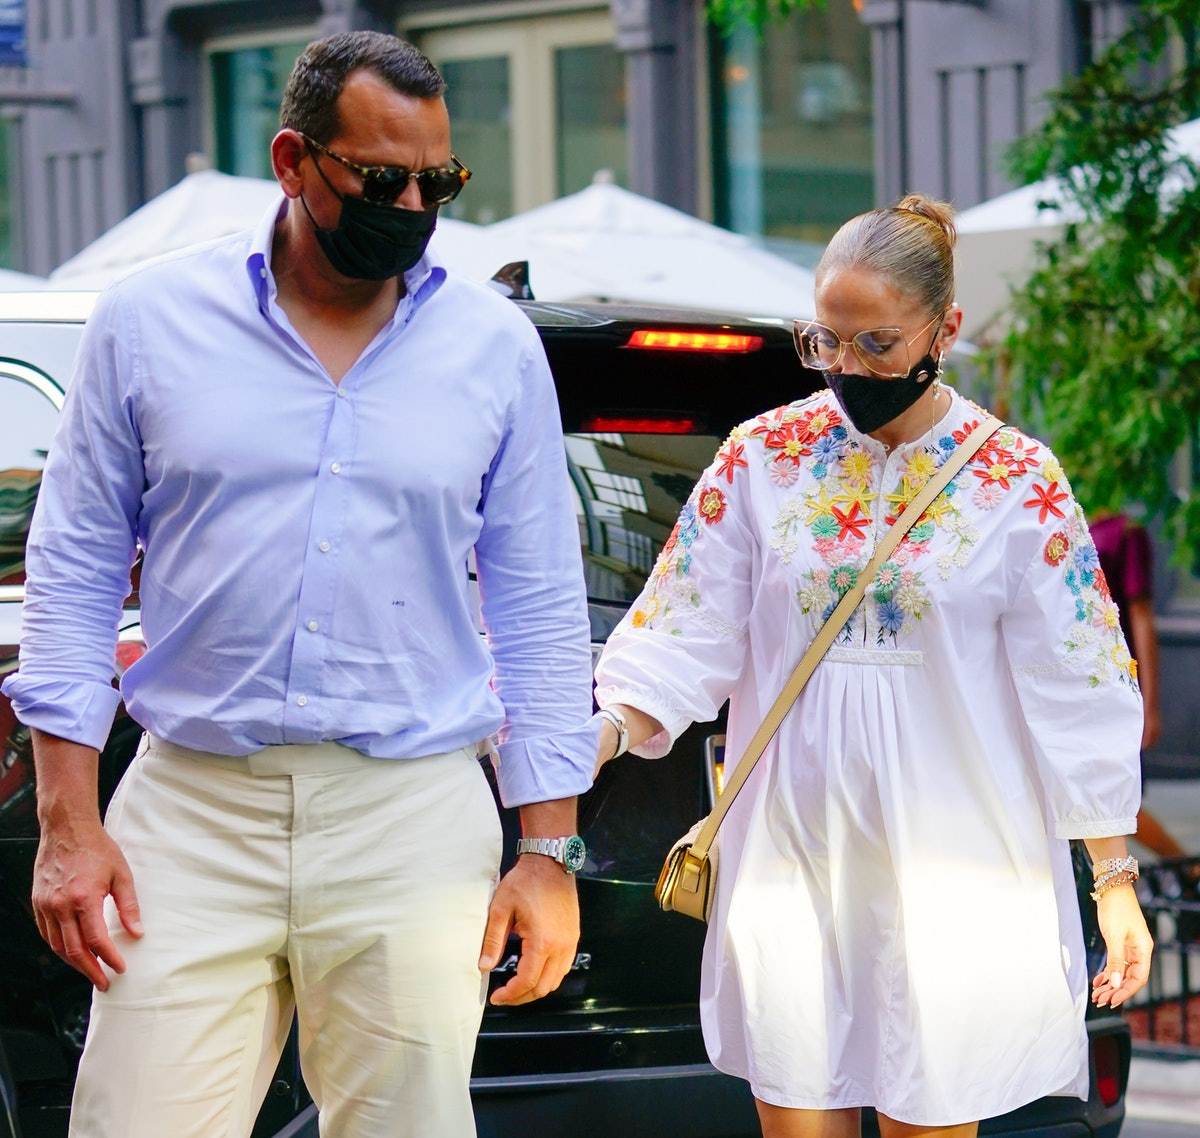 NEW YORK, NEW YORK - AUGUST 05: Jennifer Lopez and Alex Rodriguez wear protective face masks on August 05, 2020 in New York City. (Photo by Jackson Lee/GC Images)